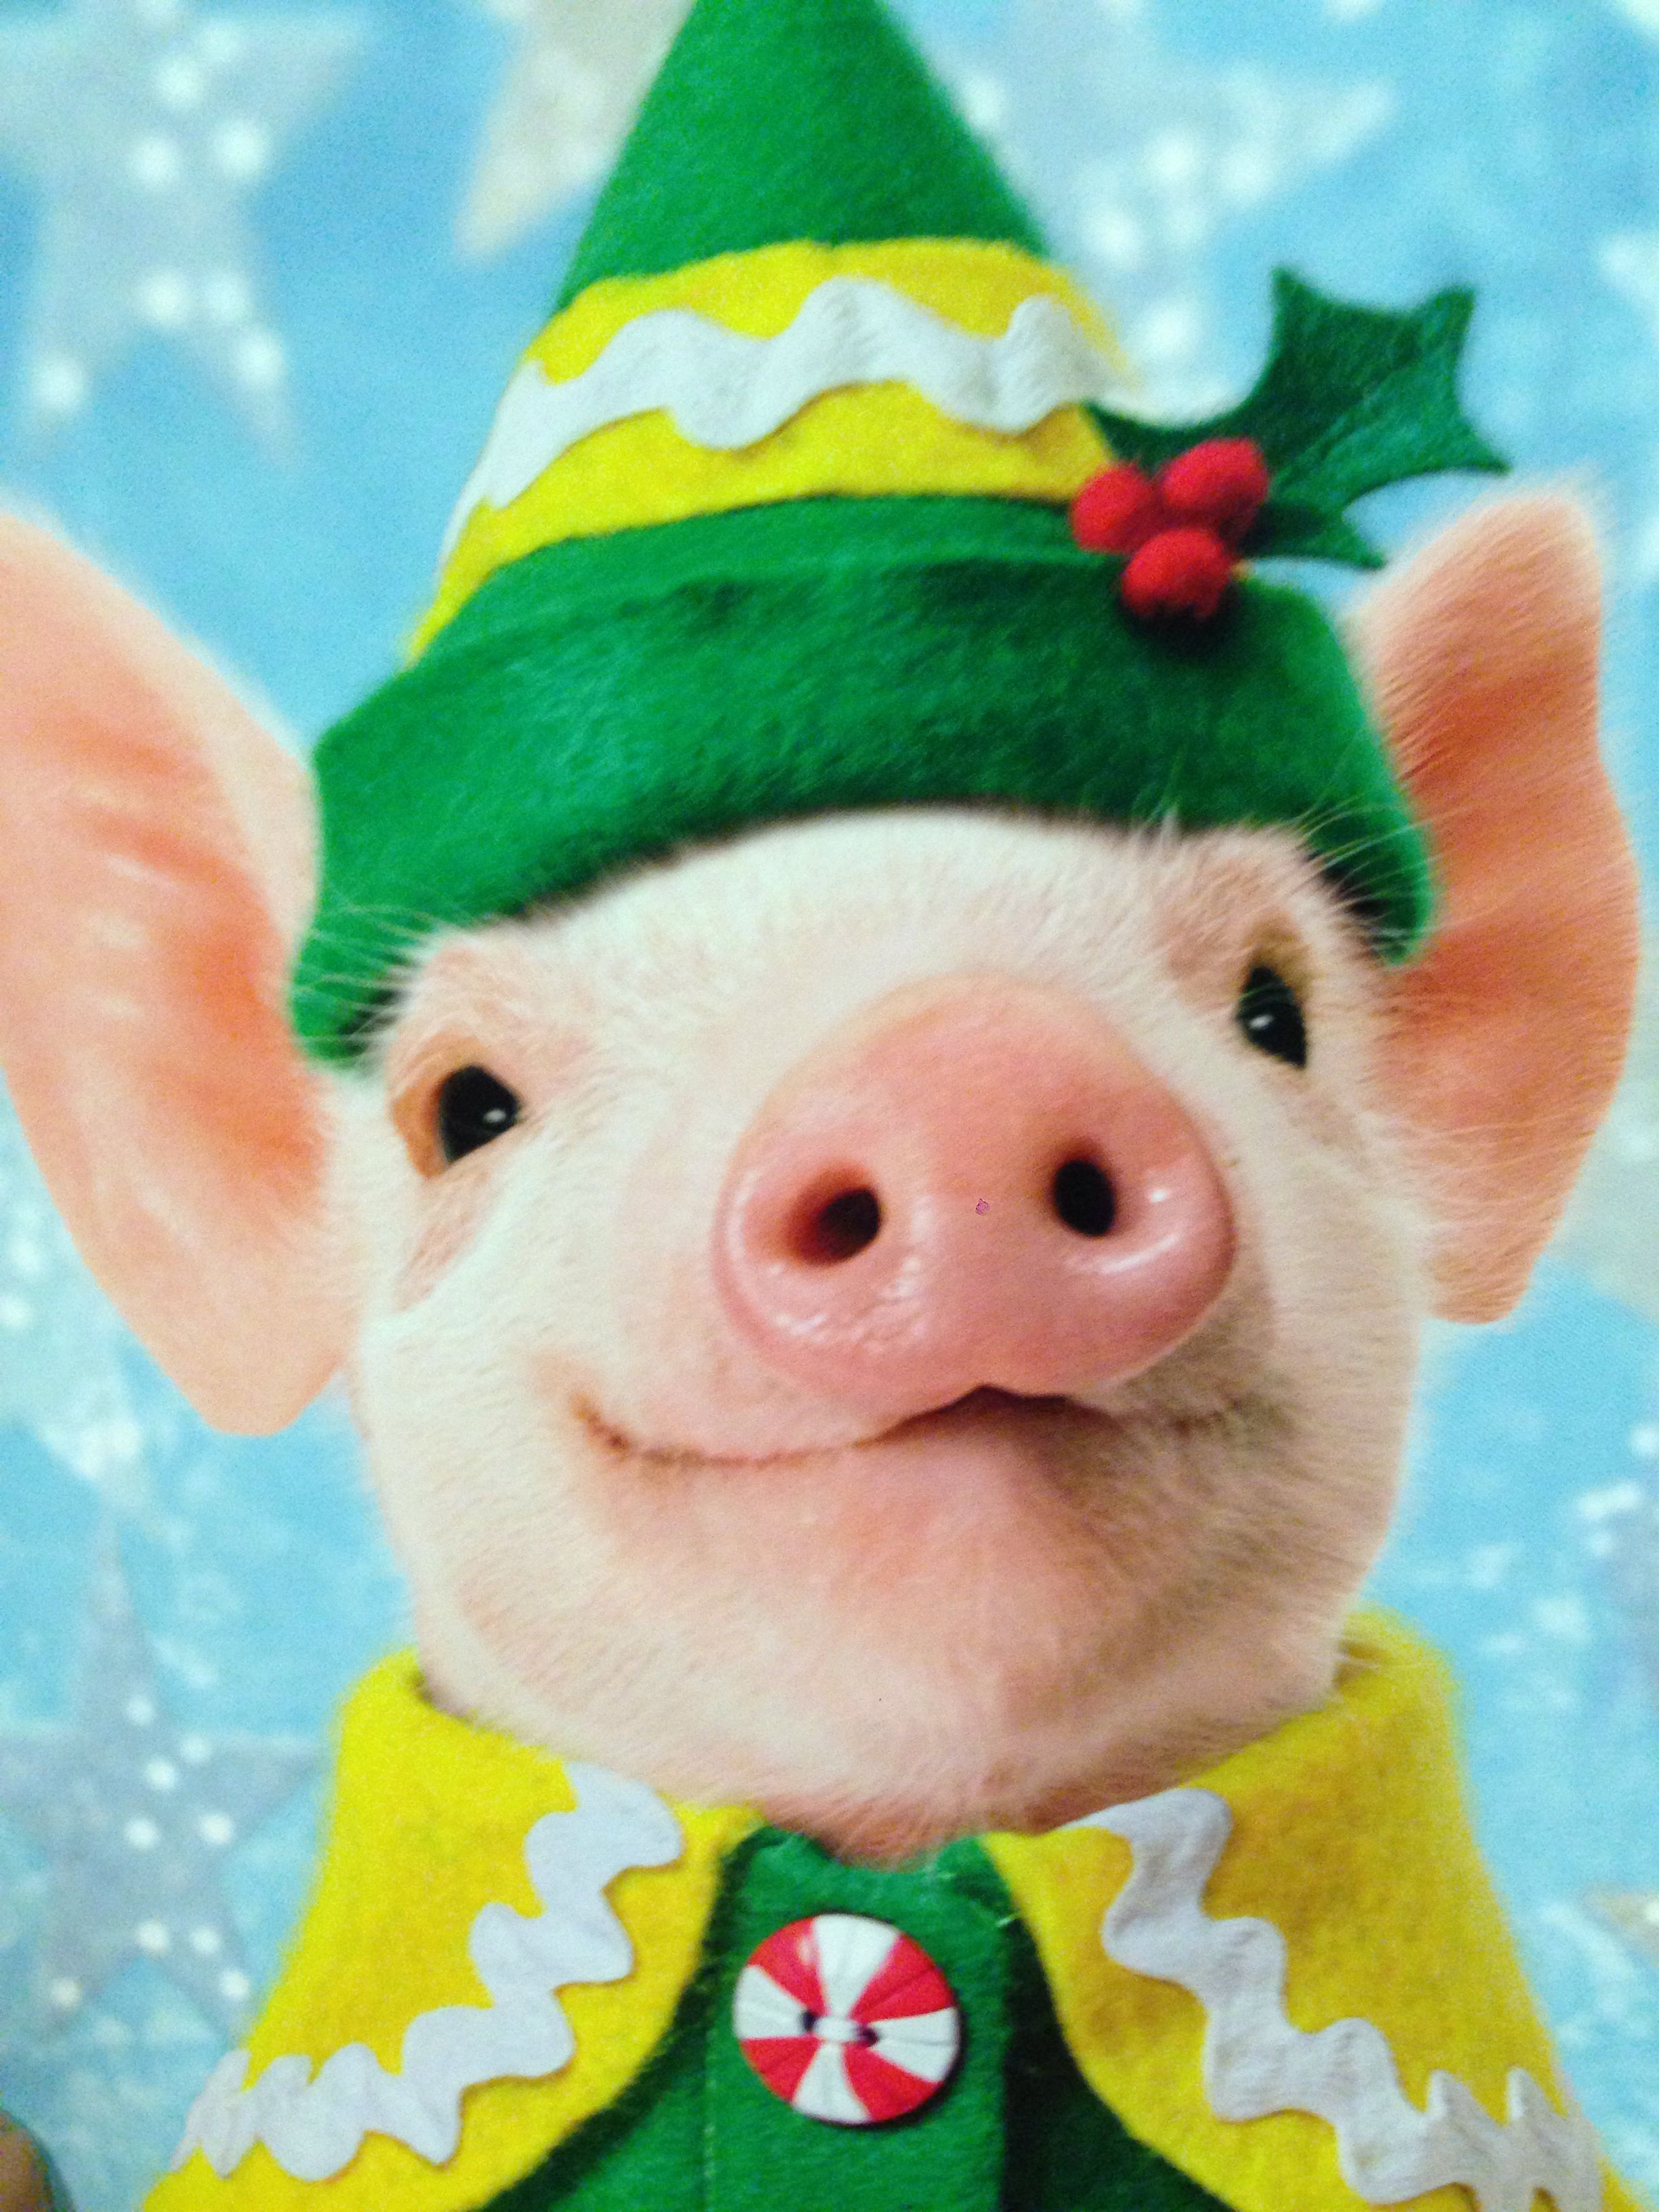 Christmas Pigs.Christmas Piggy Yes Smile Please Baby Pigs Cute